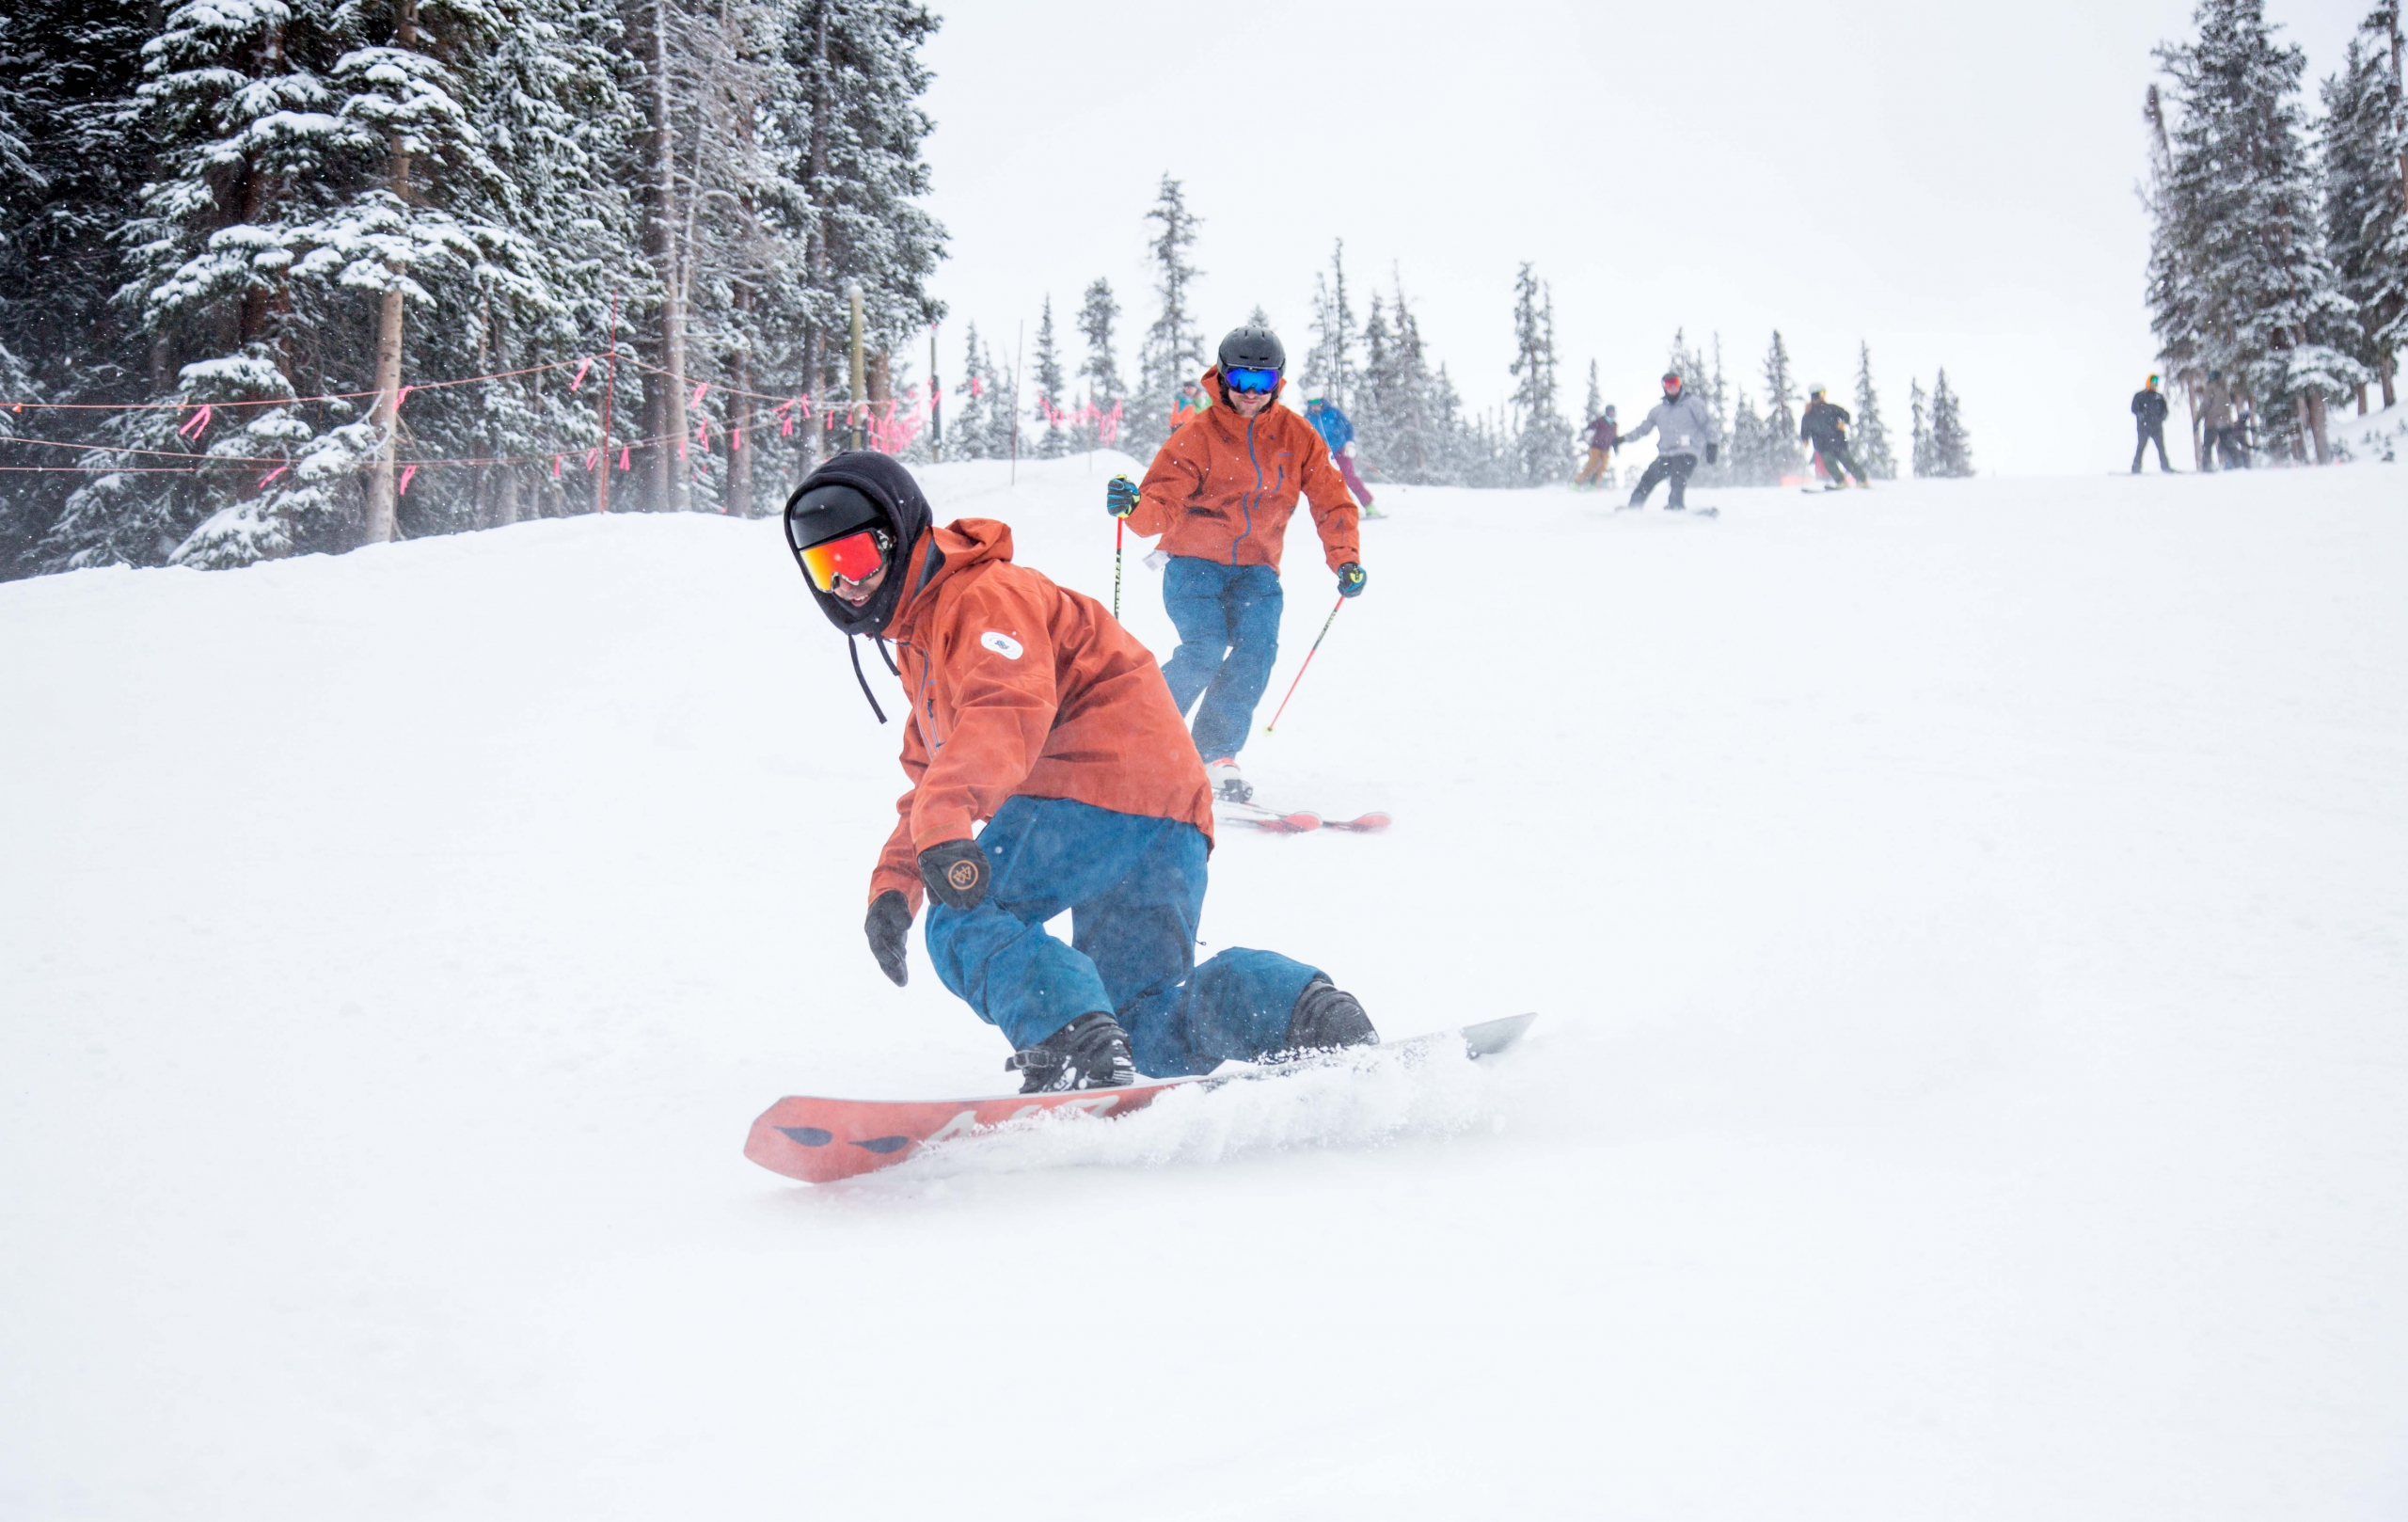 PSIA-AASI National Team members snowboard and ski down the slope at A-Basin